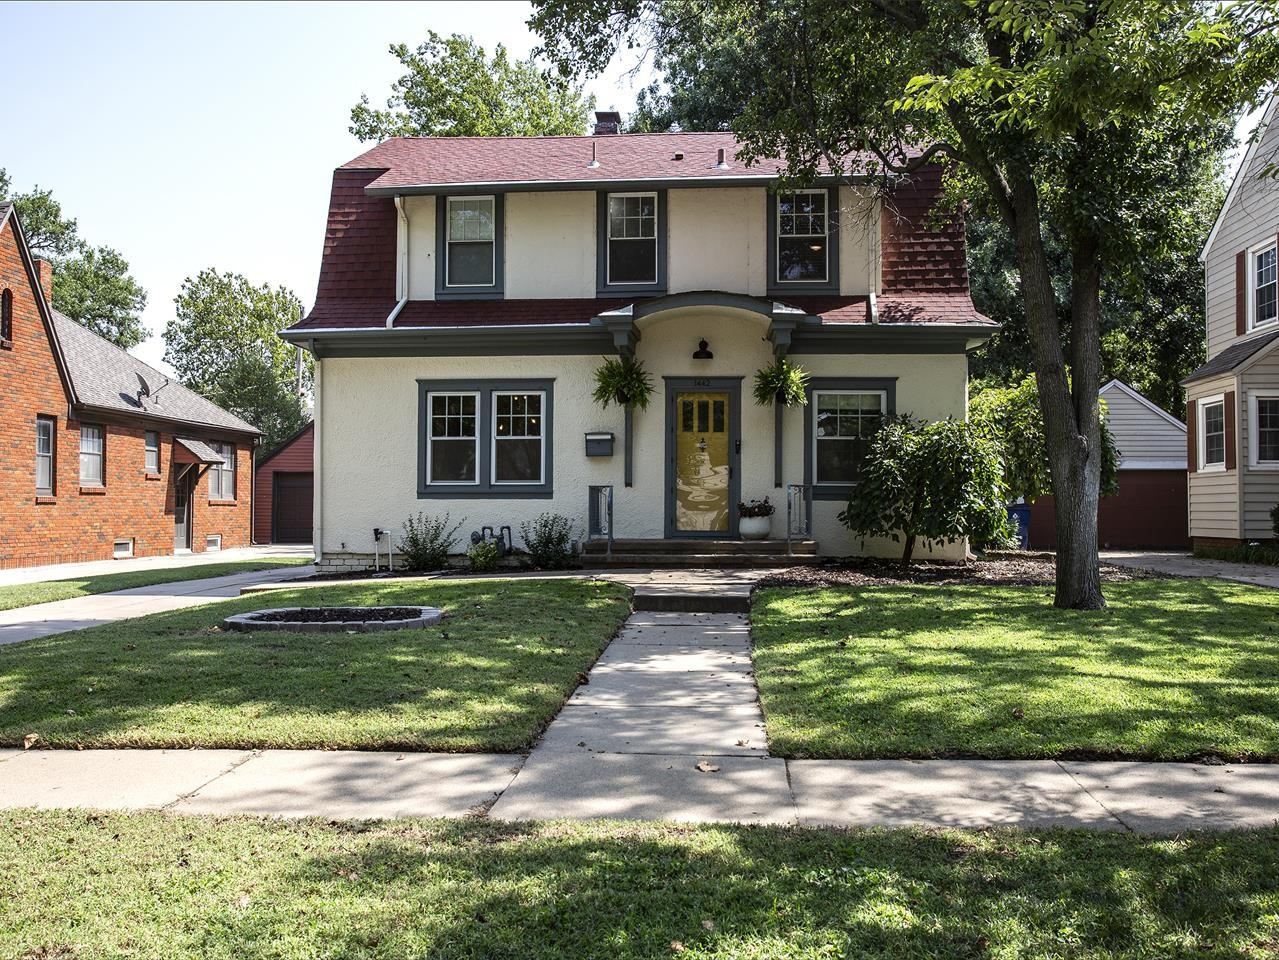 Showings to begin Wednesday Sept 15. Check out this super cute home on a lovely street in Riverside!